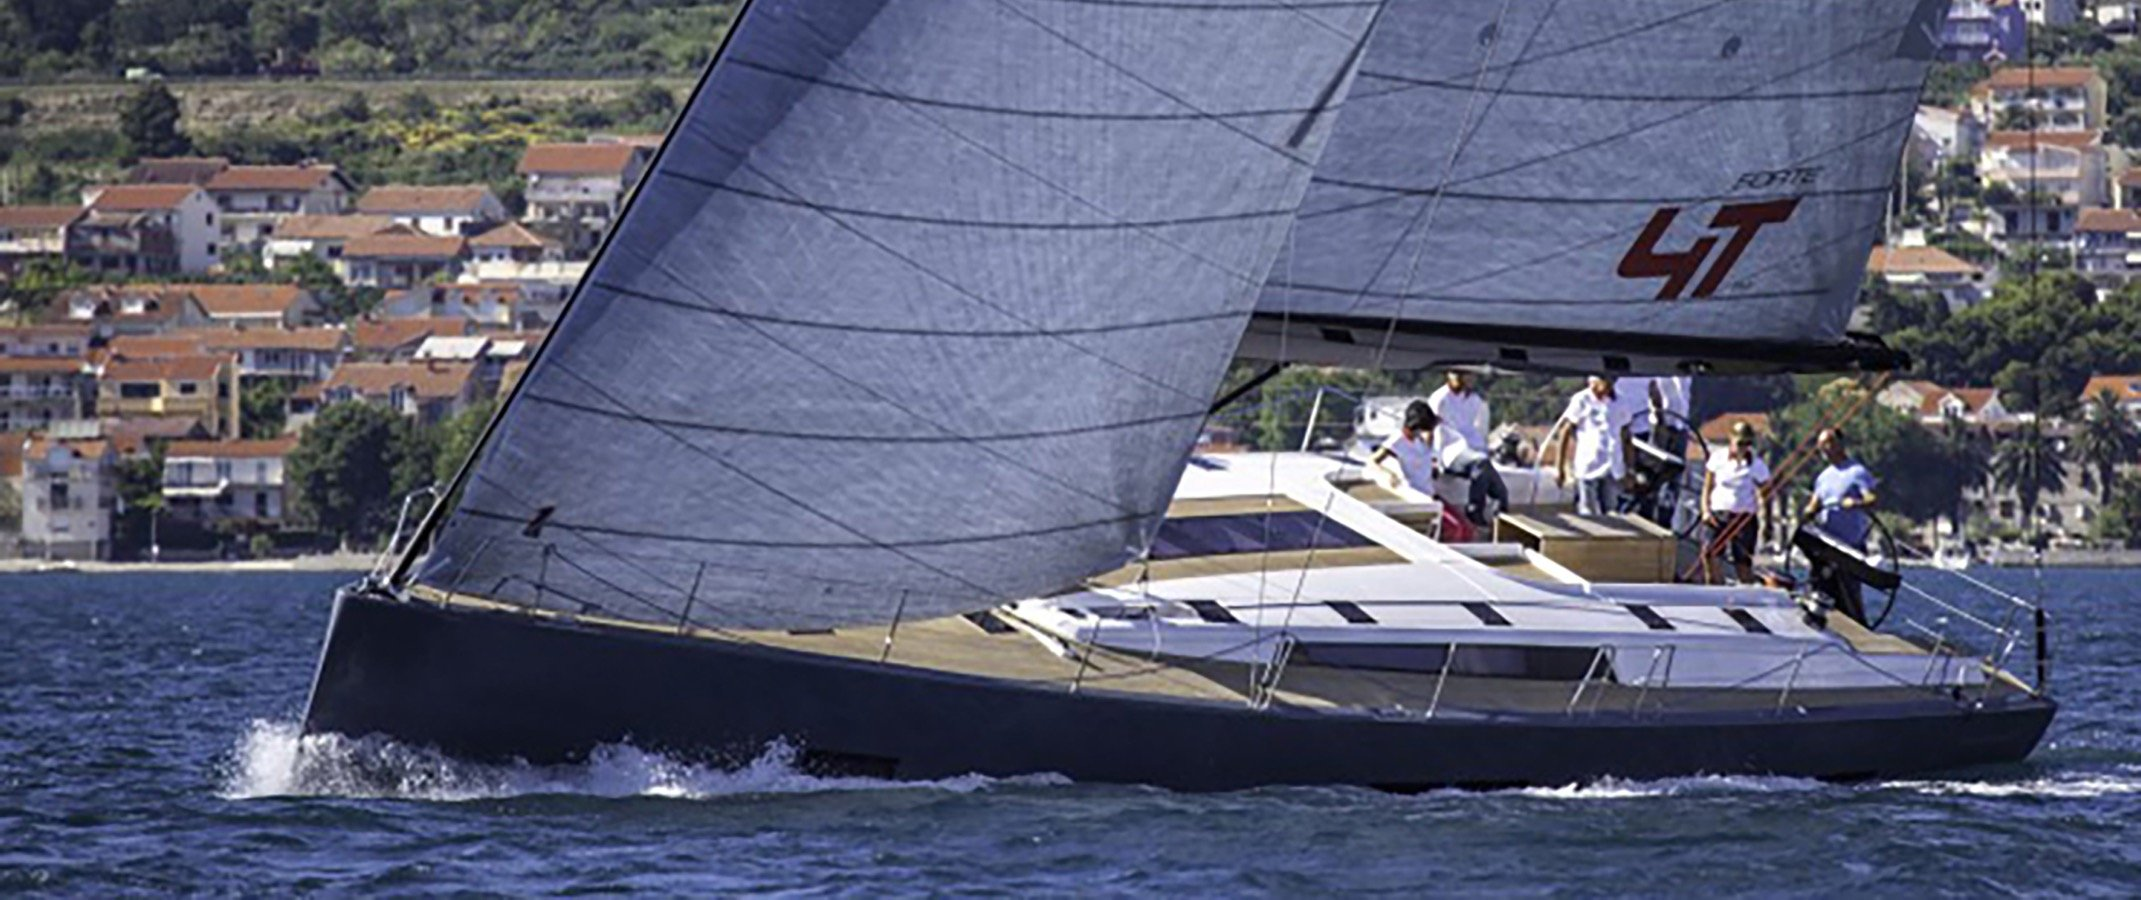 Salona 650 sailing